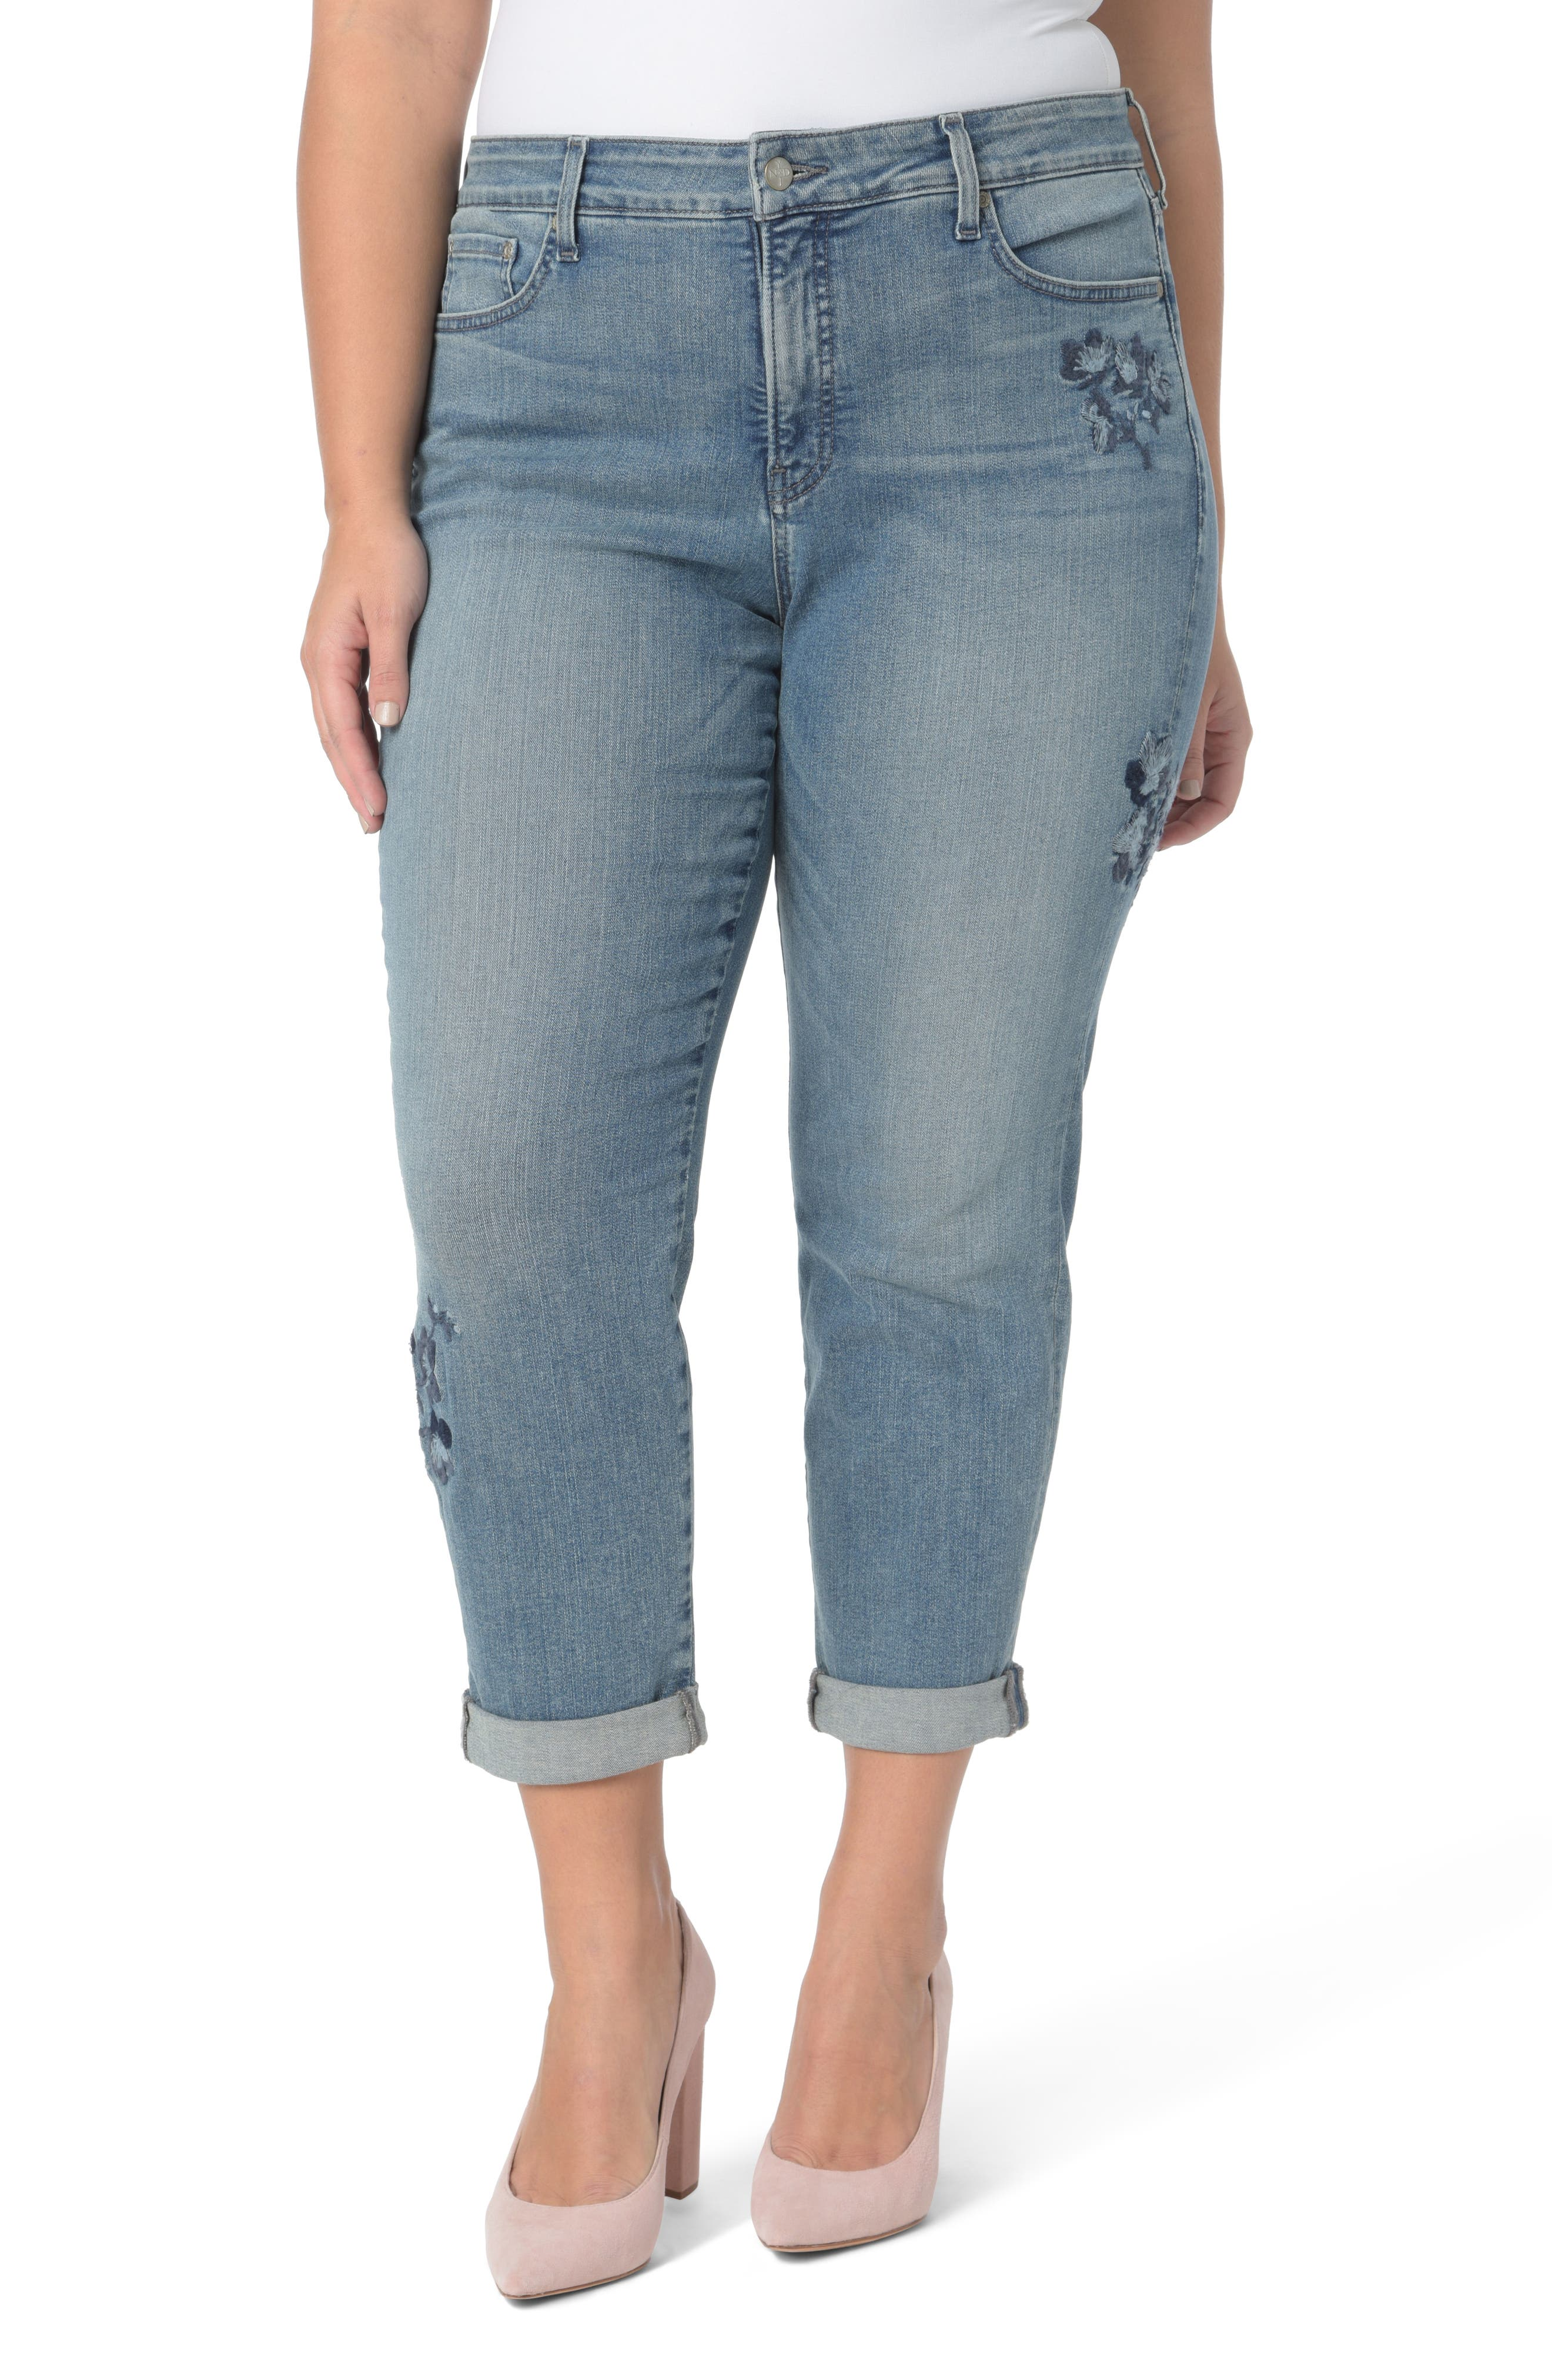 Alternate Image 1 Selected - NYDJ Floral Embroidery Boyfriend Jeans (Pacific) (Plus Size)